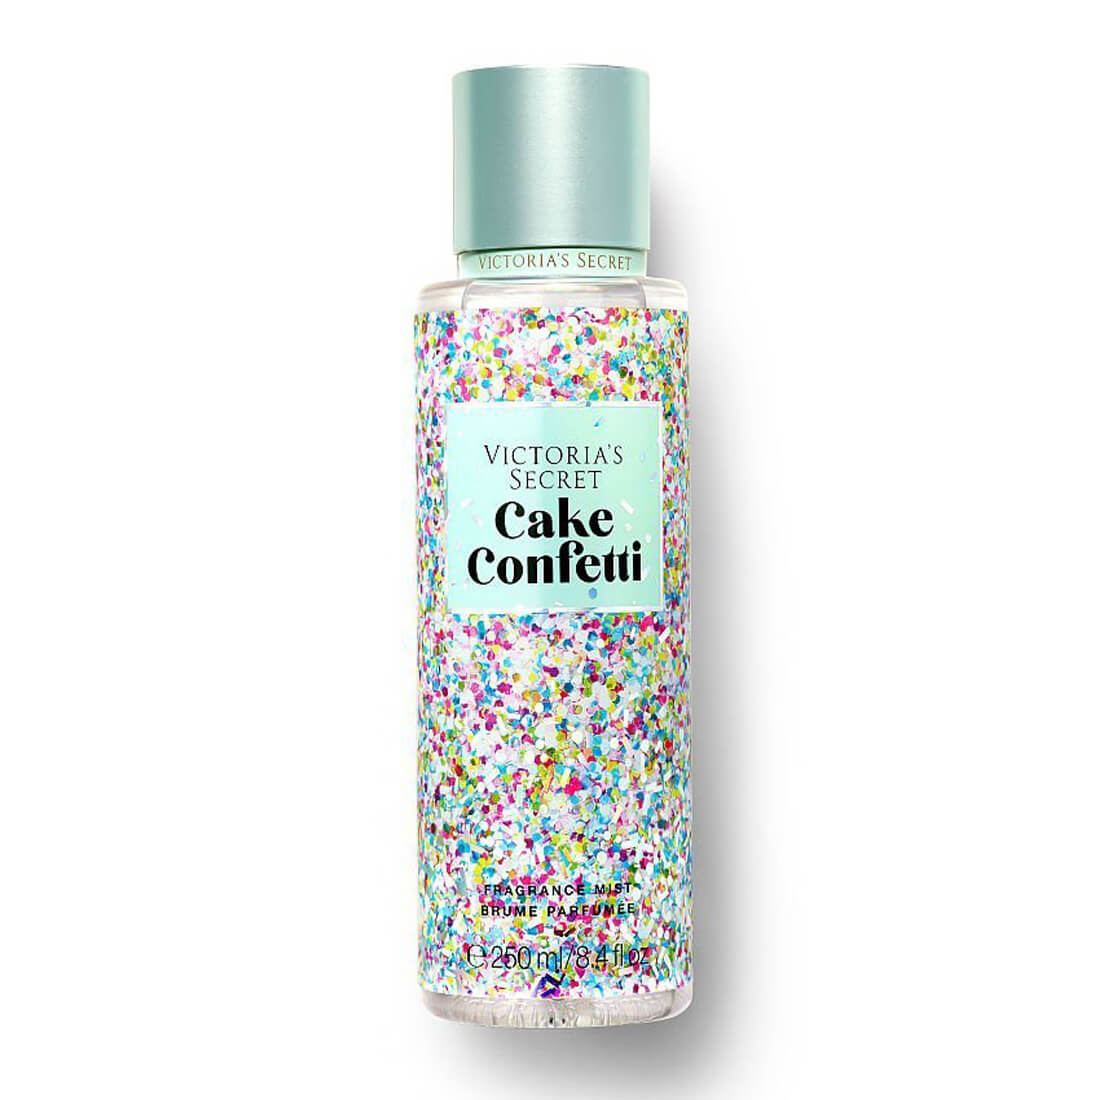 Victoria's Secret Cake Confetti Fragrance Mist 250ml